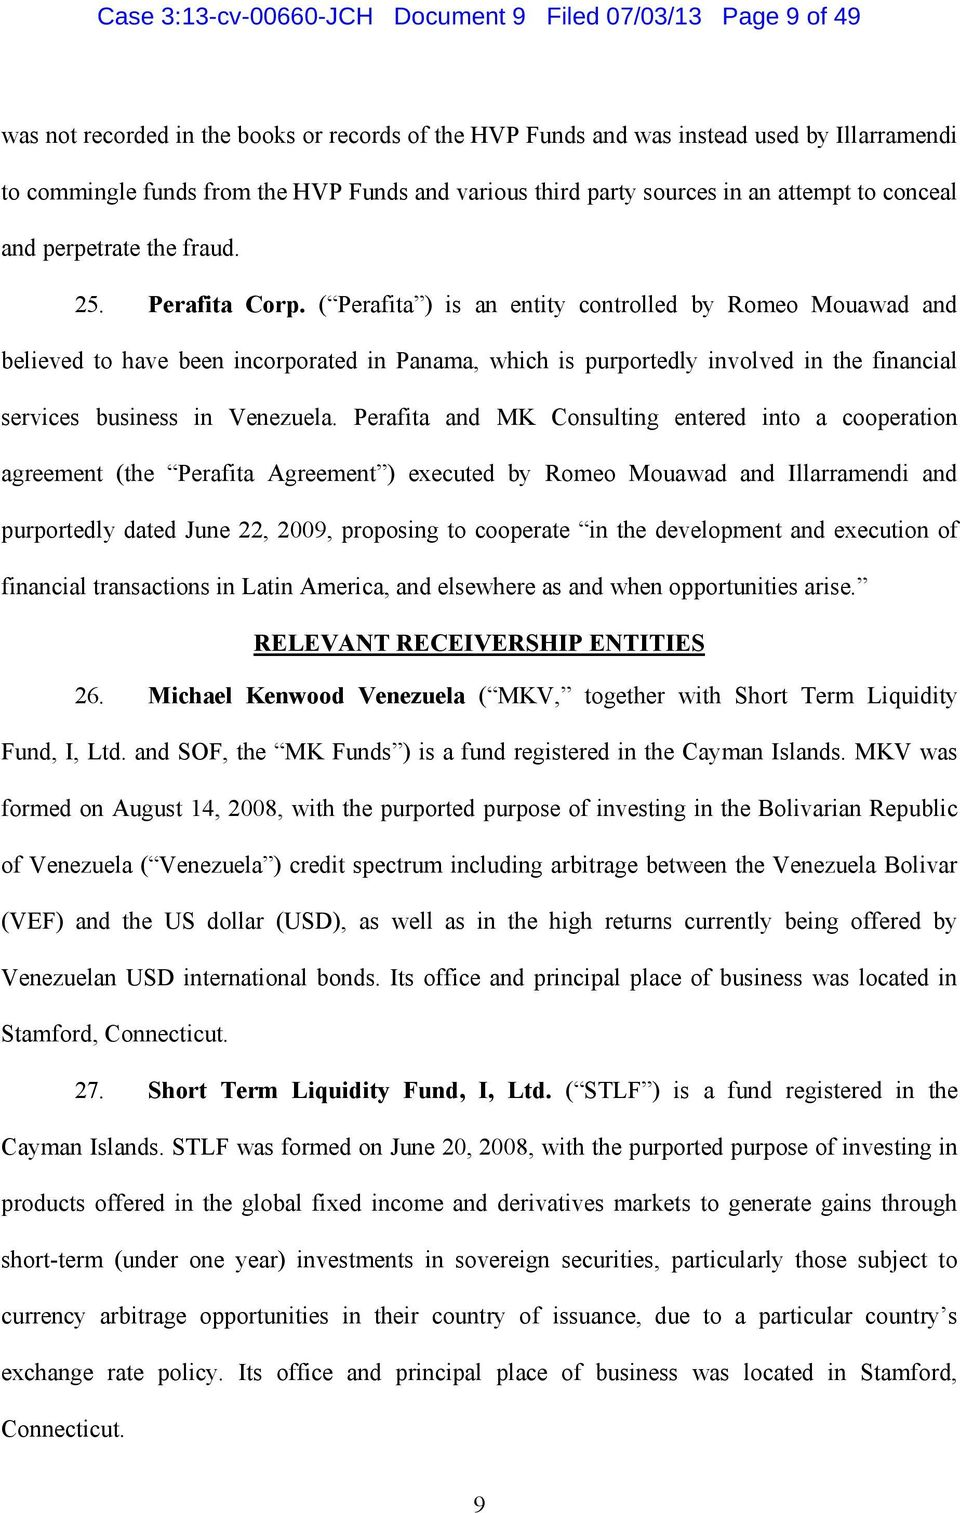 ( Perafita ) is an entity controlled by Romeo Mouawad and believed to have been incorporated in Panama, which is purportedly involved in the financial services business in Venezuela.